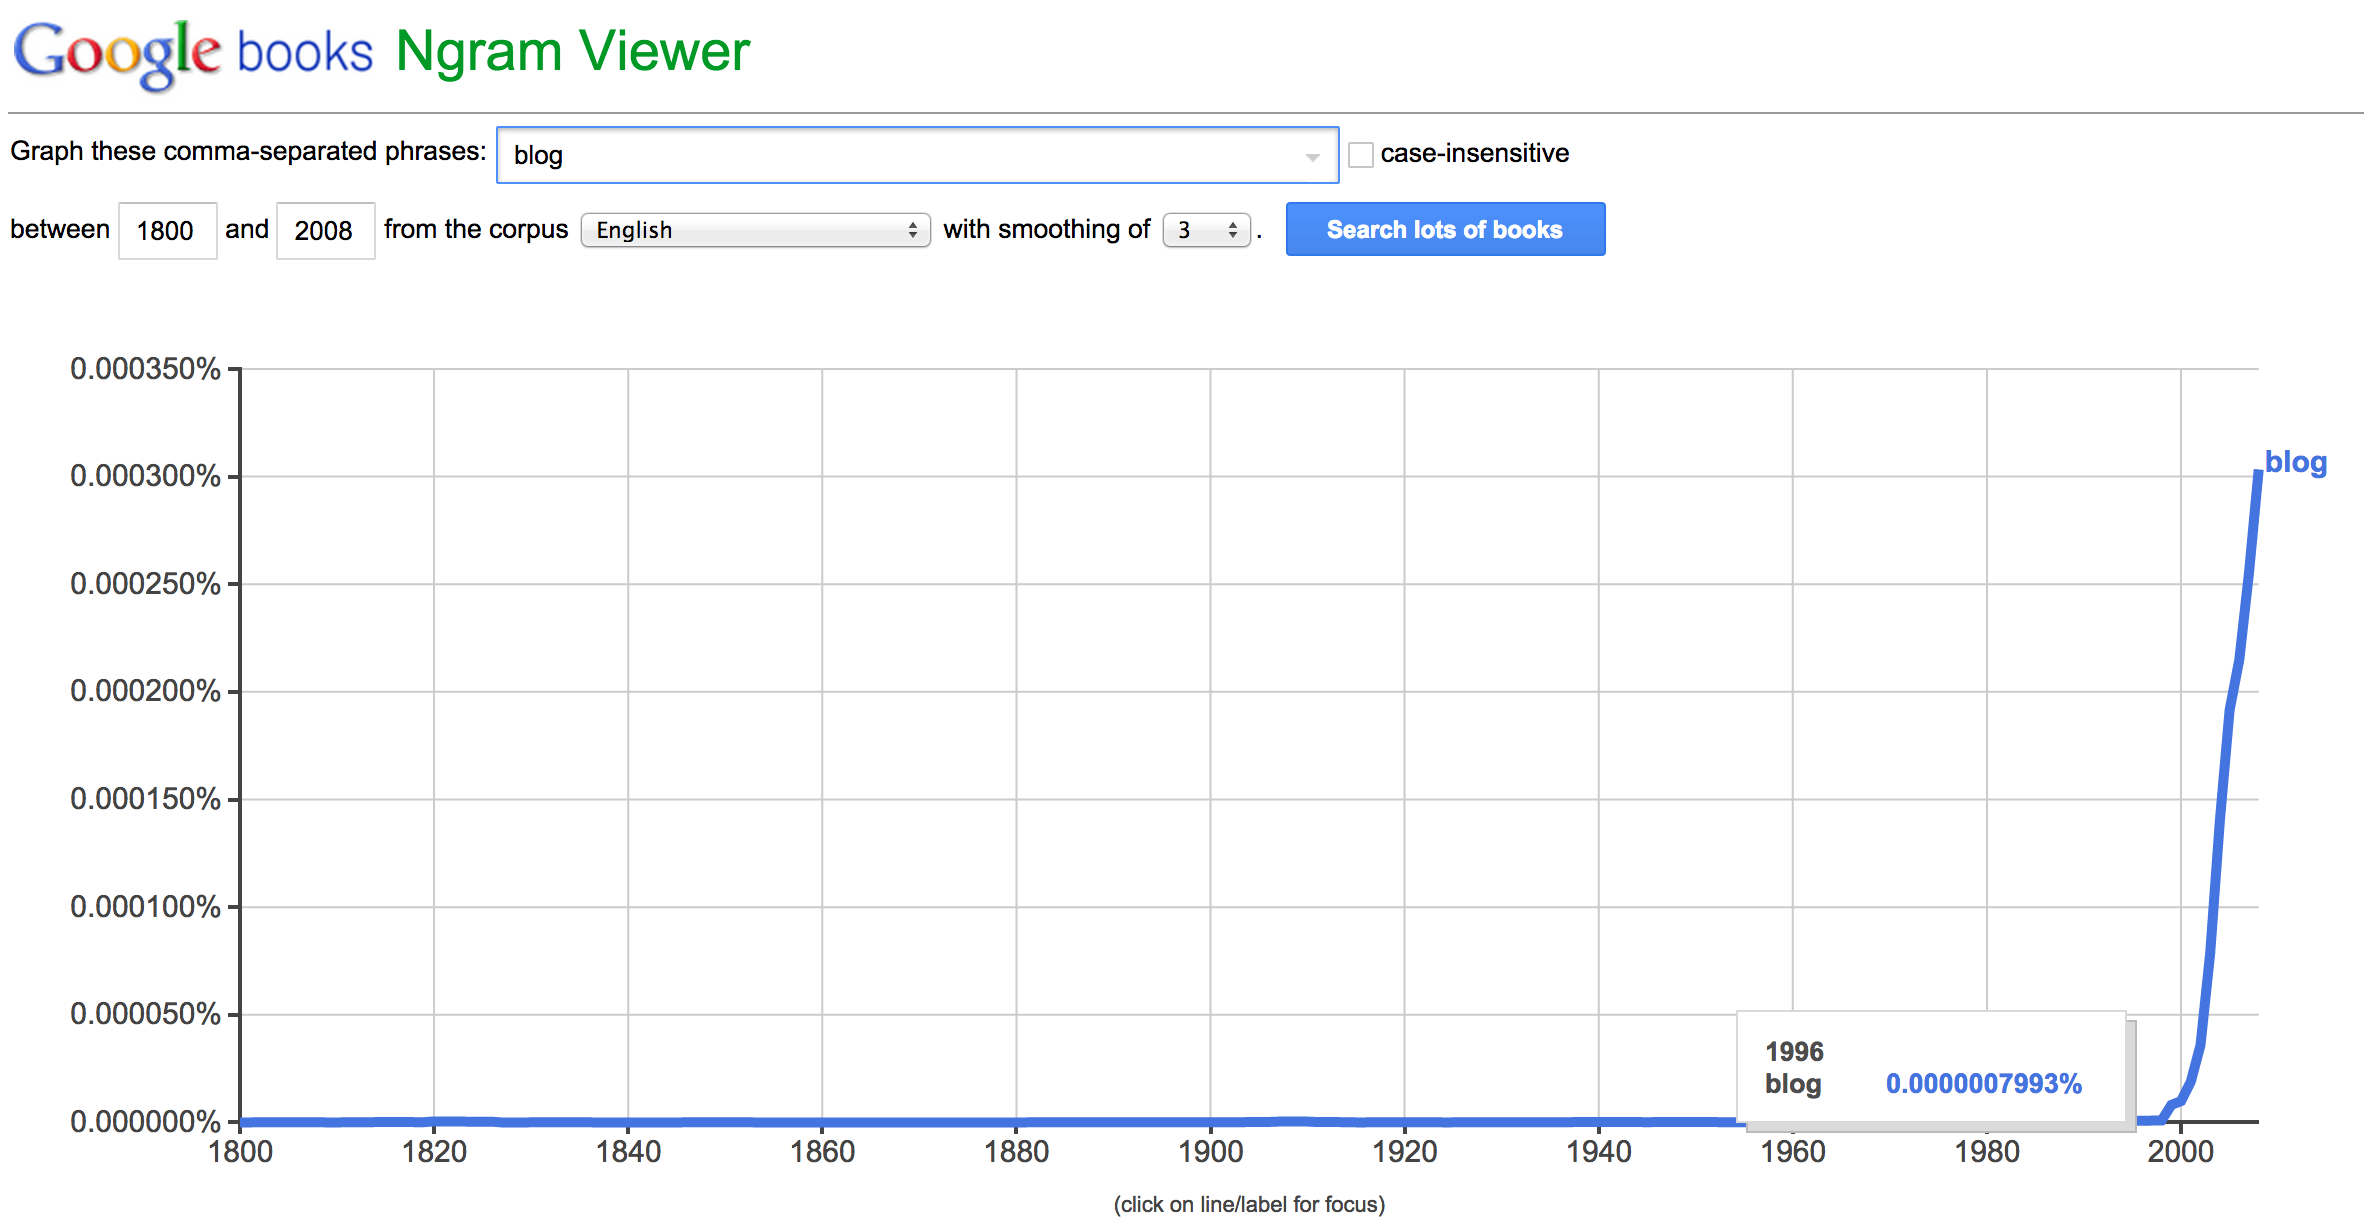 Ngram Viewer to Show Increasing Use of word 'Blog' in Books